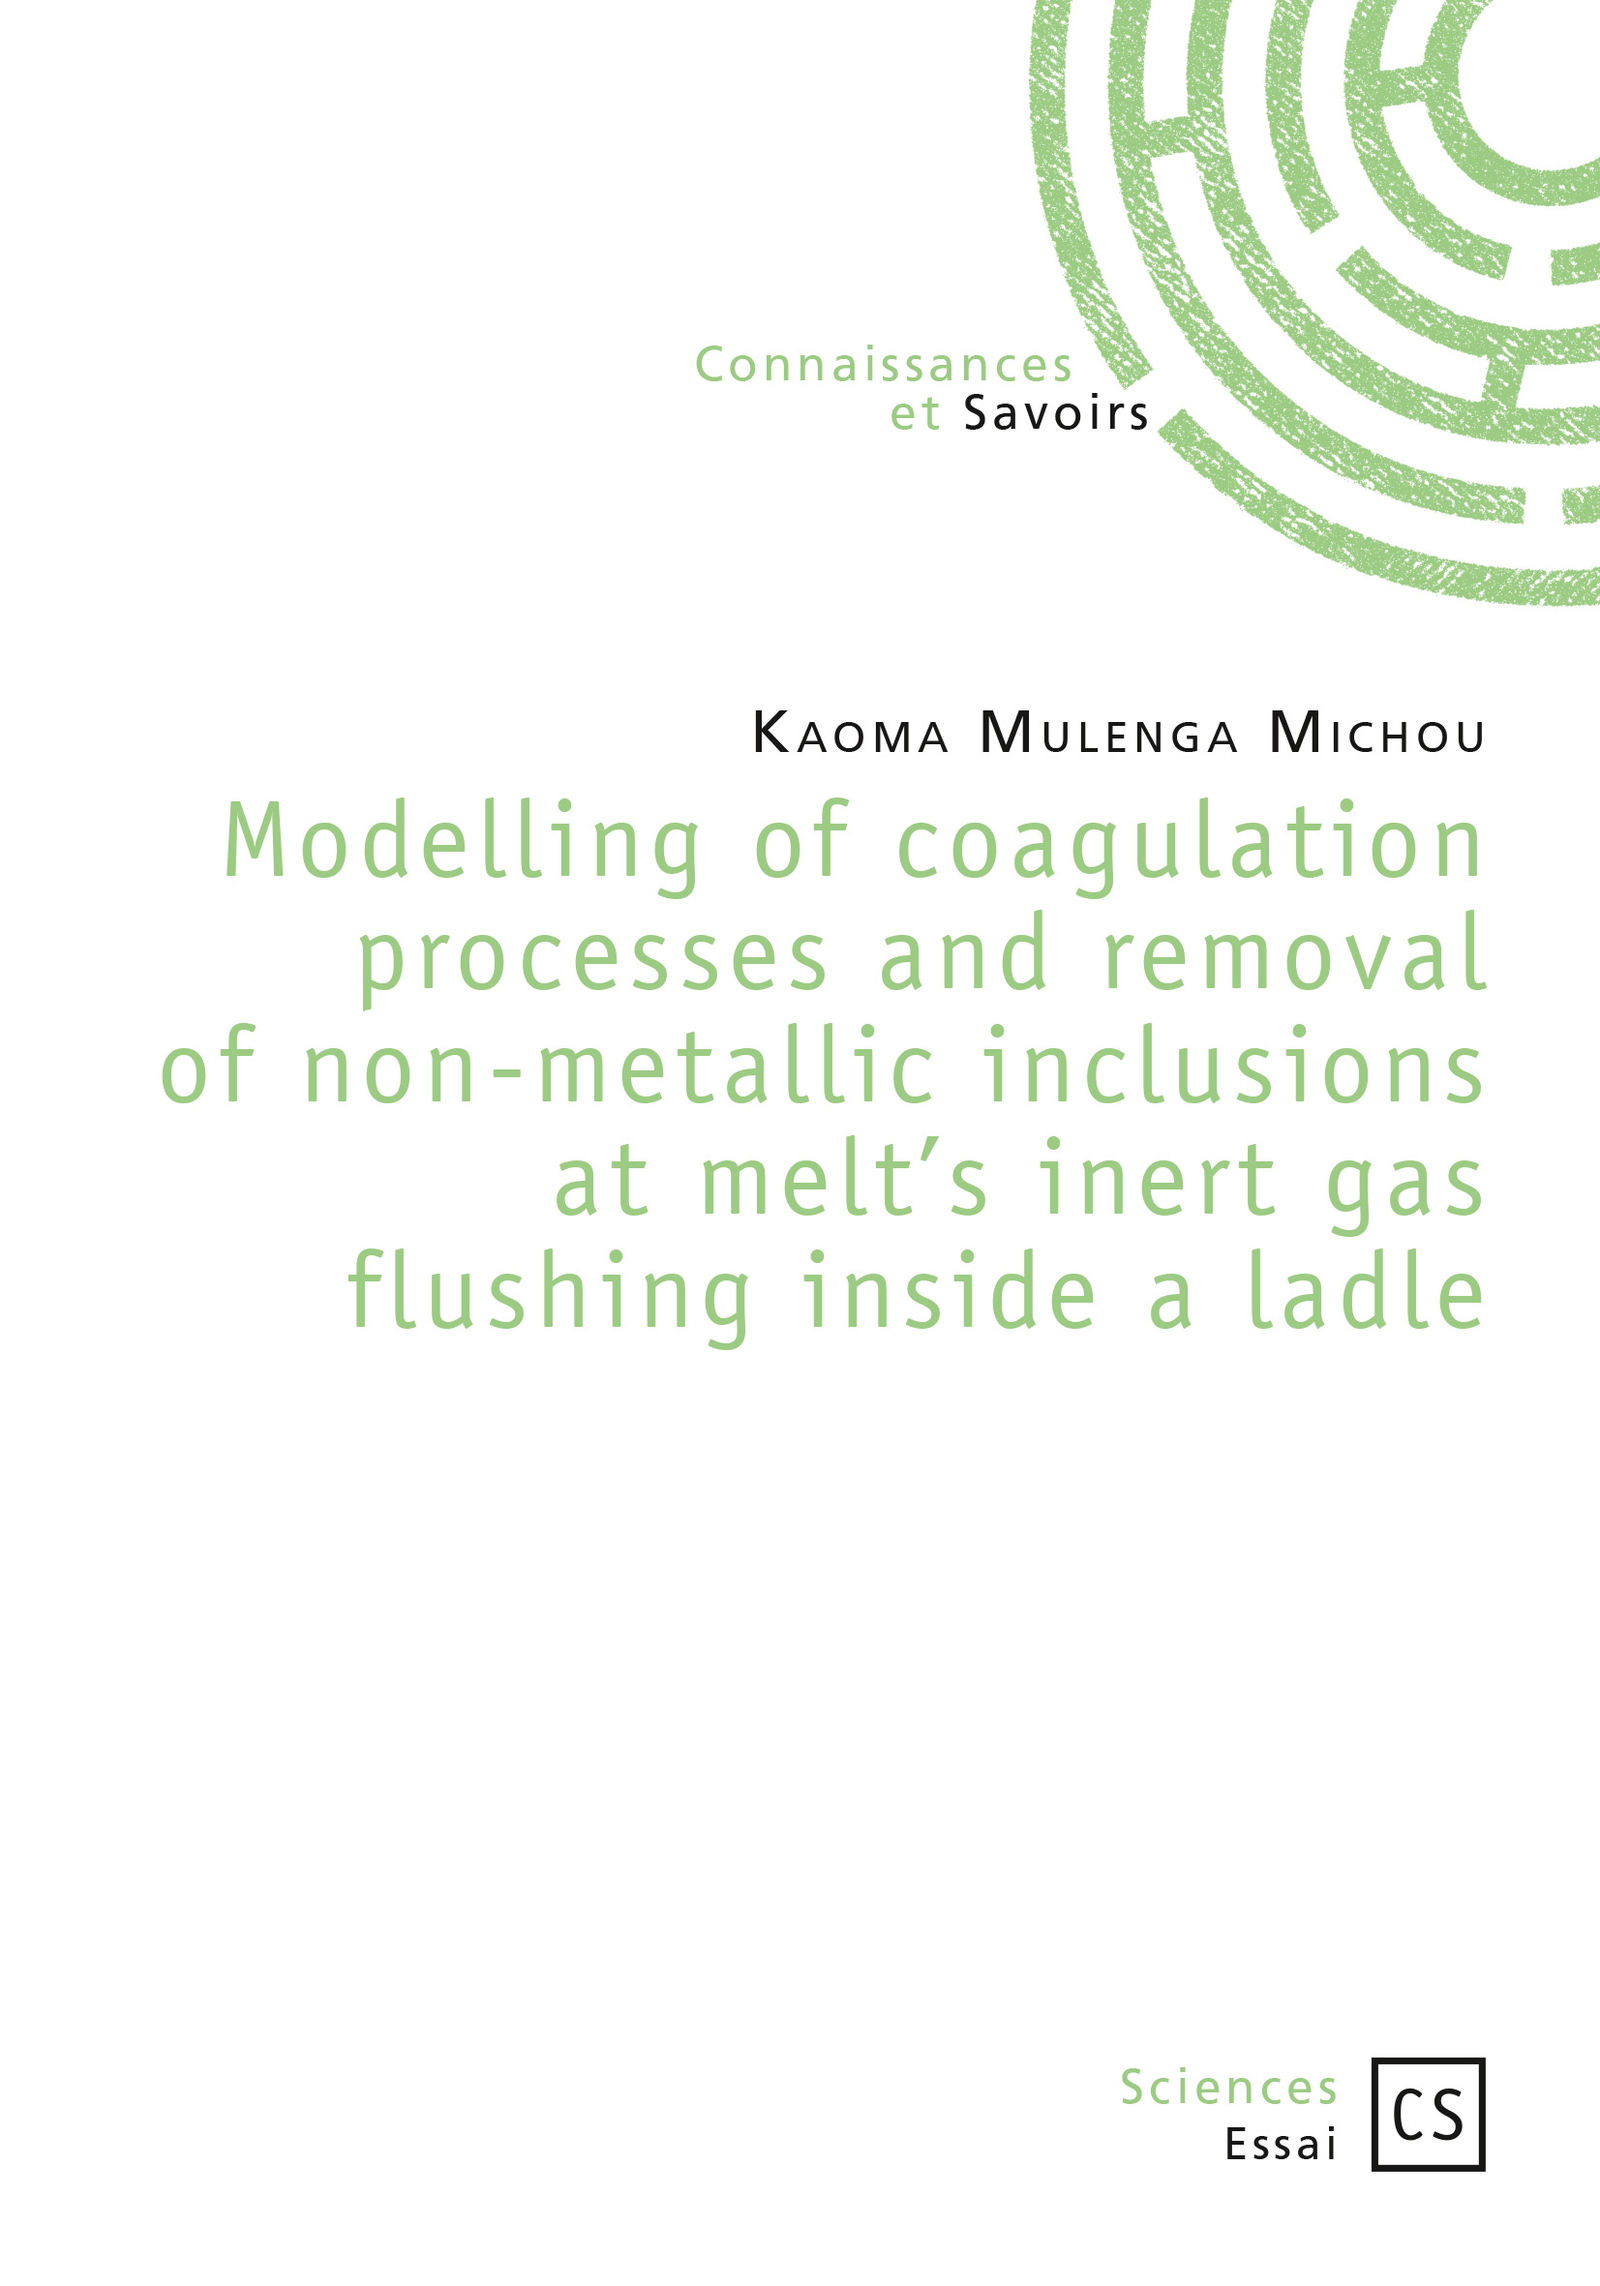 Modelling of coagulation processes and removal of non-metallic inclusions at melt's inert gas flushing inside a ladle